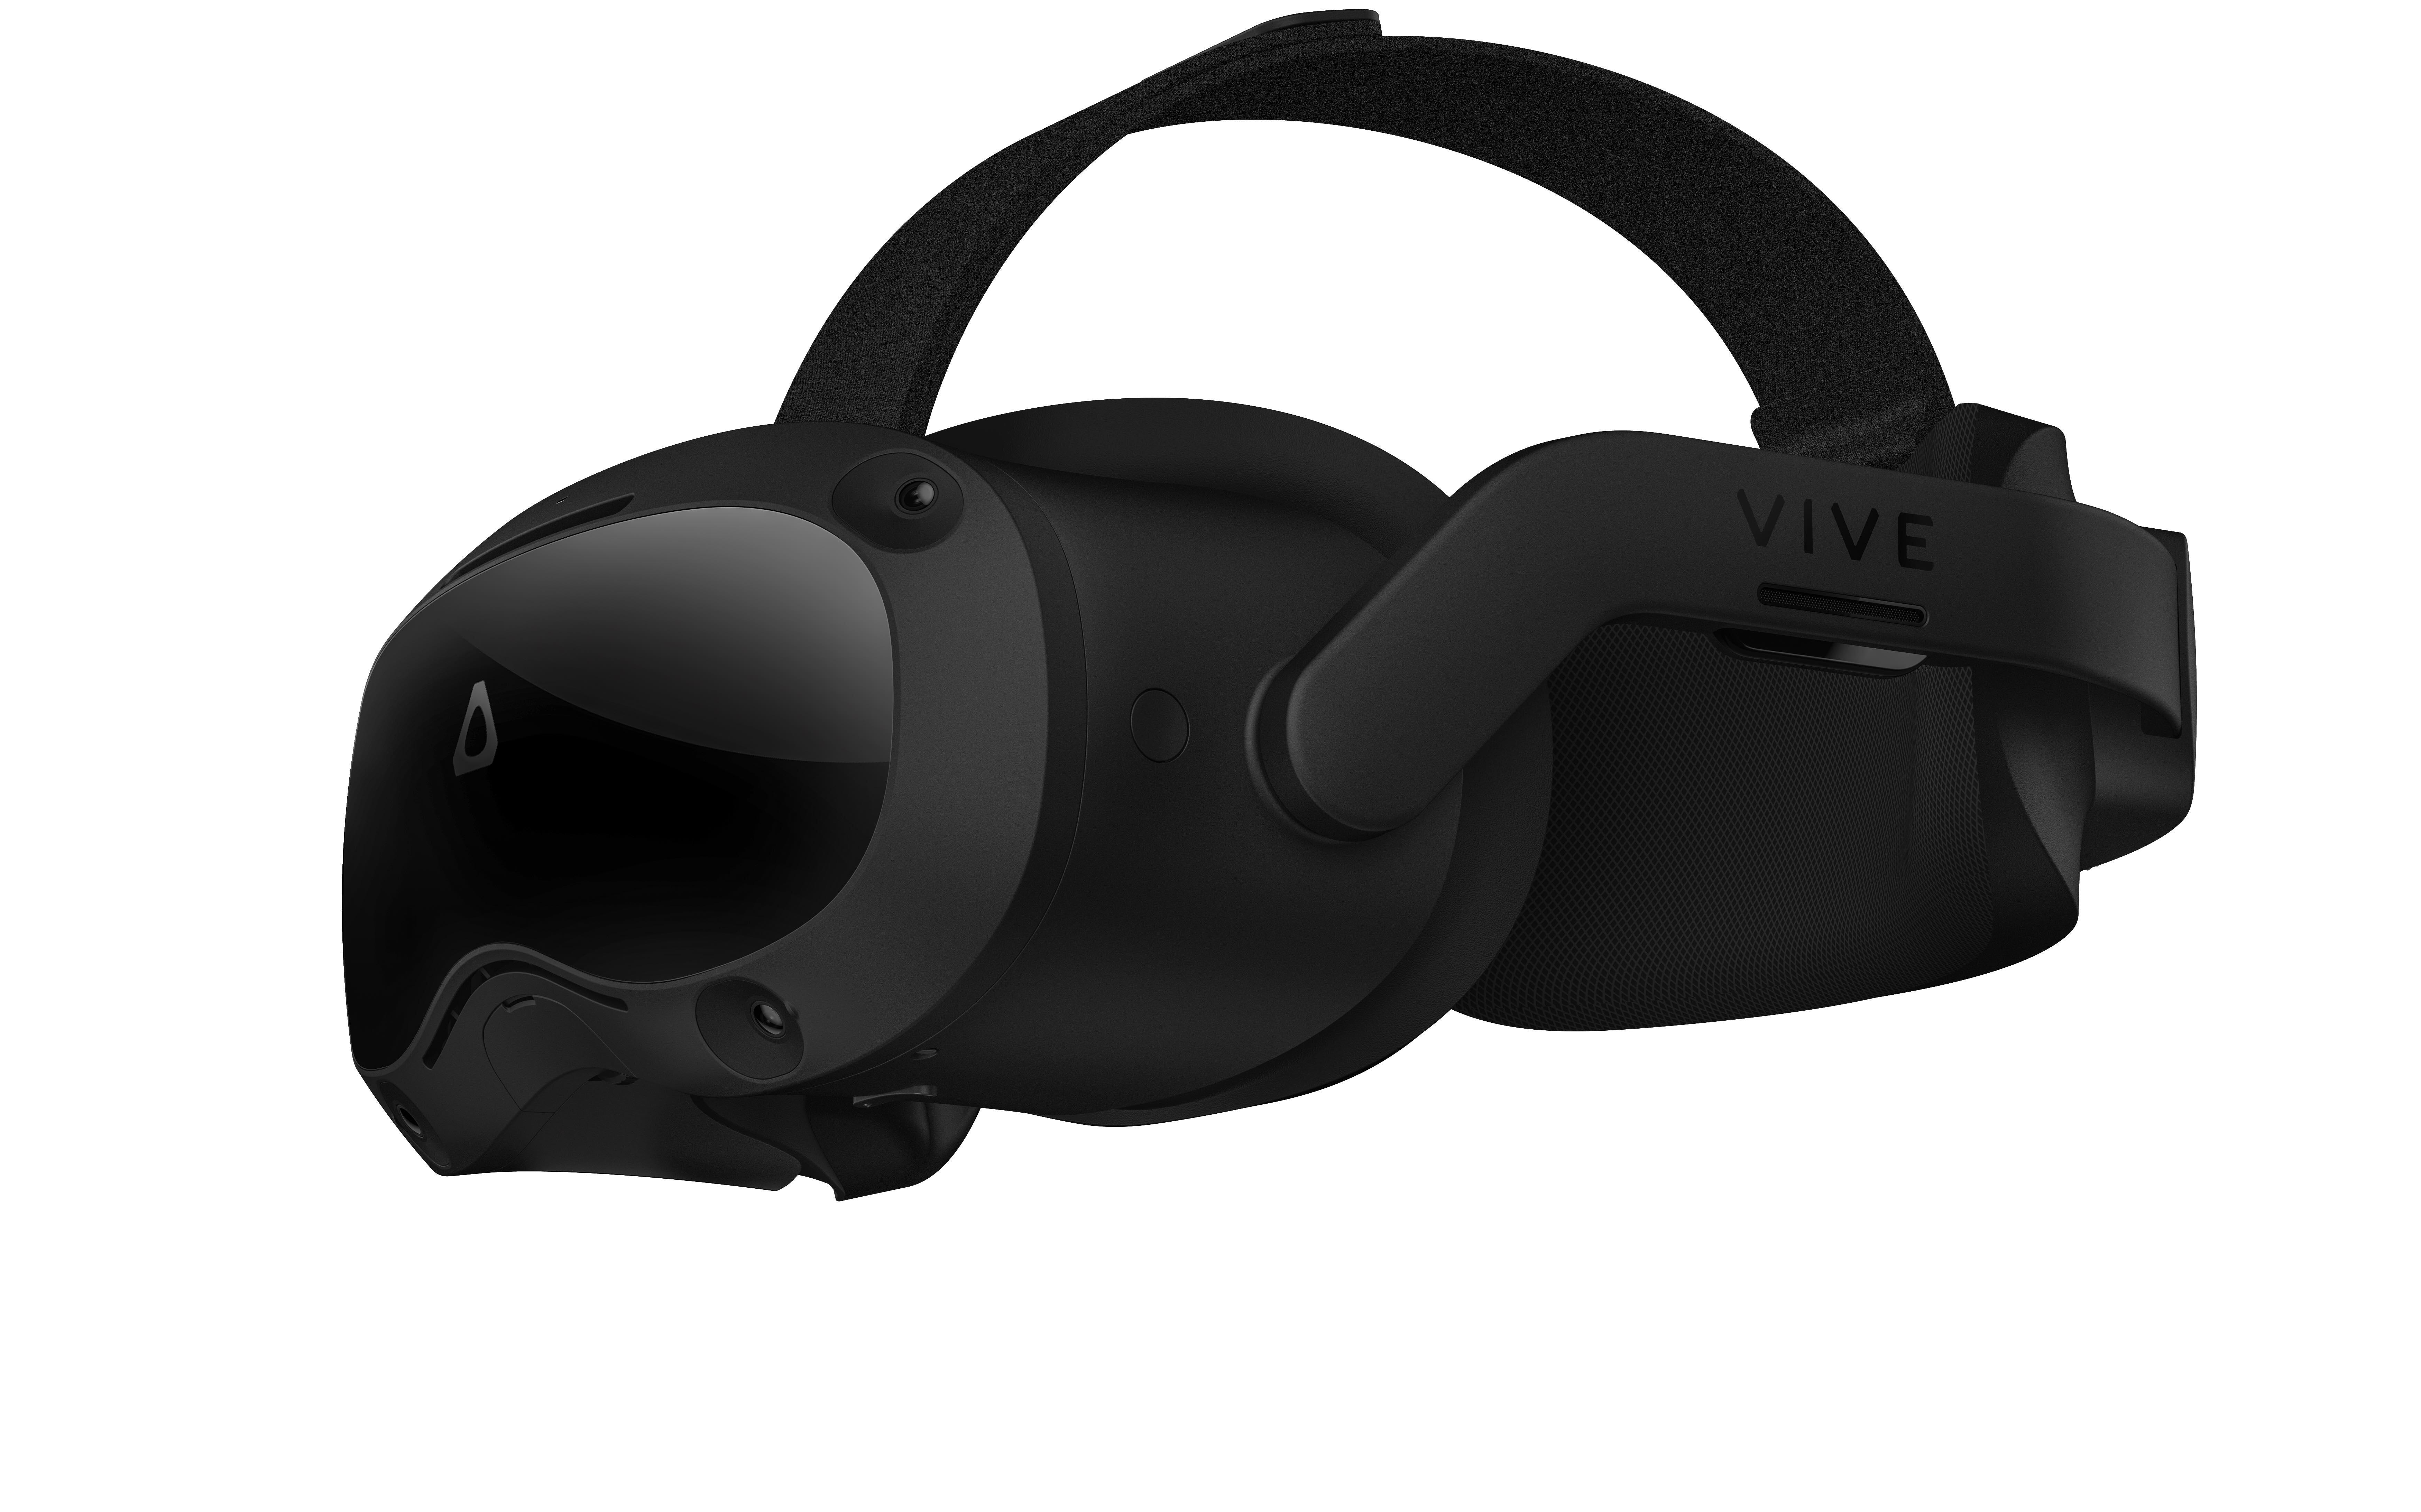 vive-focus-3-front-angle-low